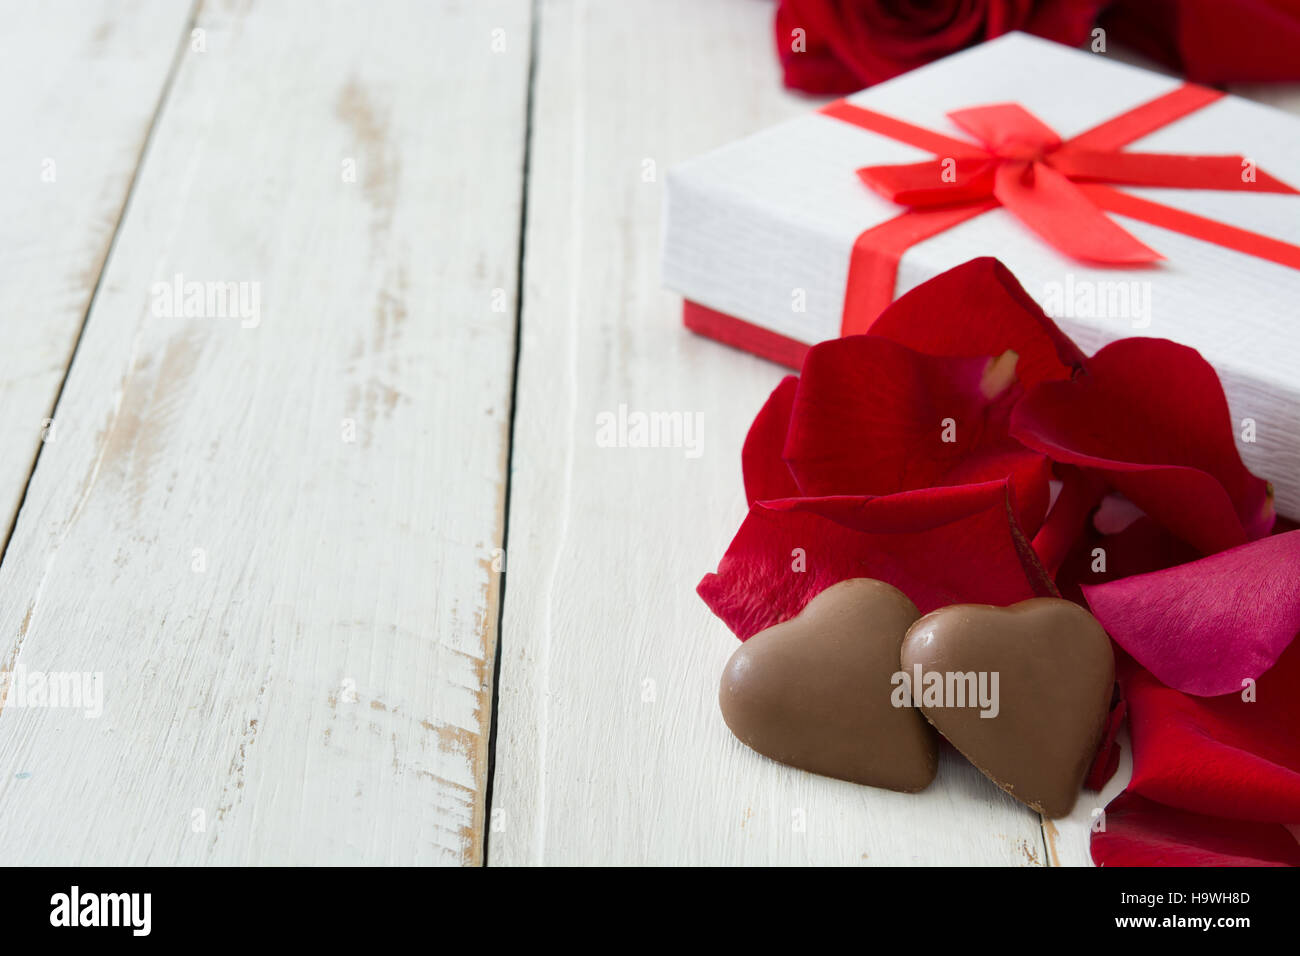 White gift box, roses and chocolate with heart shape on wooden table.copyspace Stock Photo